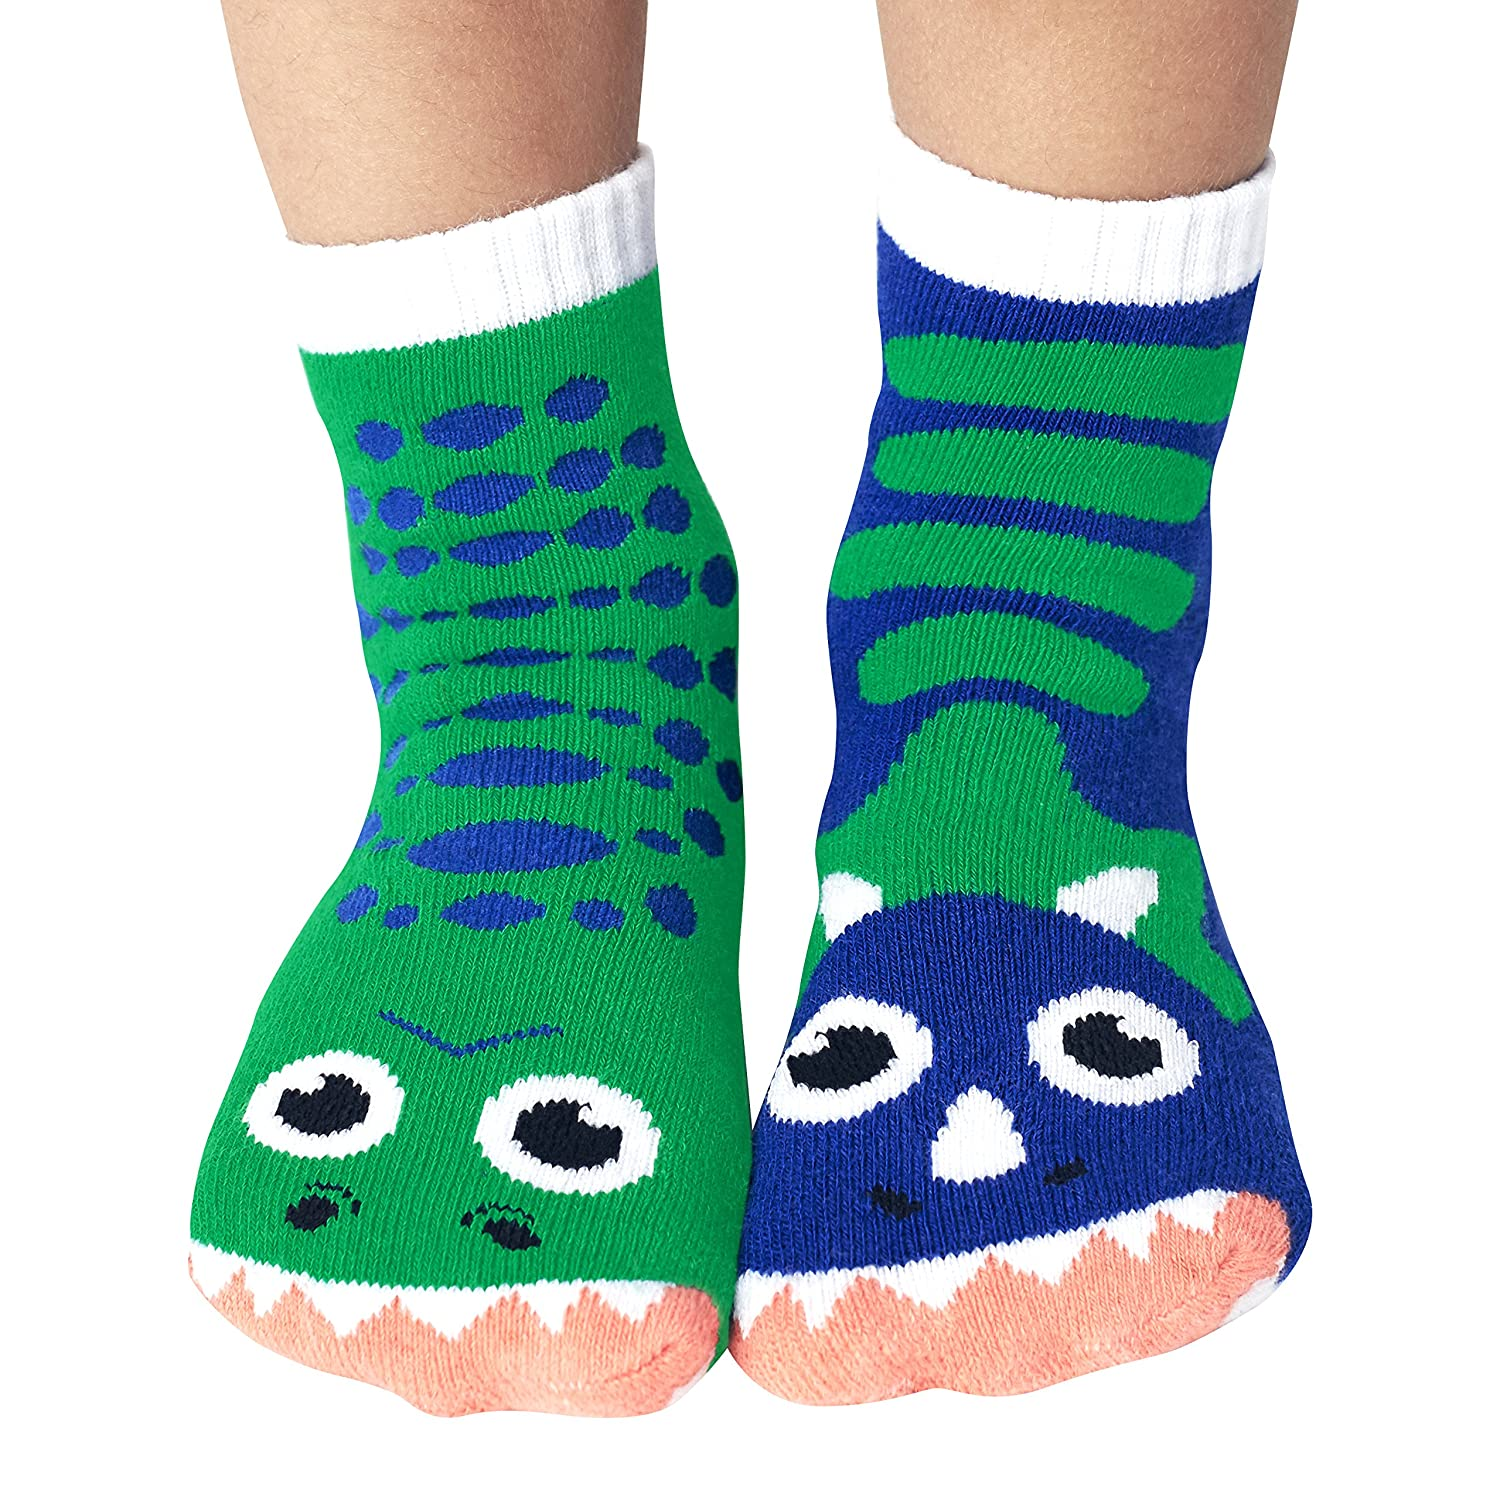 Kids Dinosaur Gripper Socks - Mismatched Friends T-Rex and Triceratops Dinos PS-8 PS-4